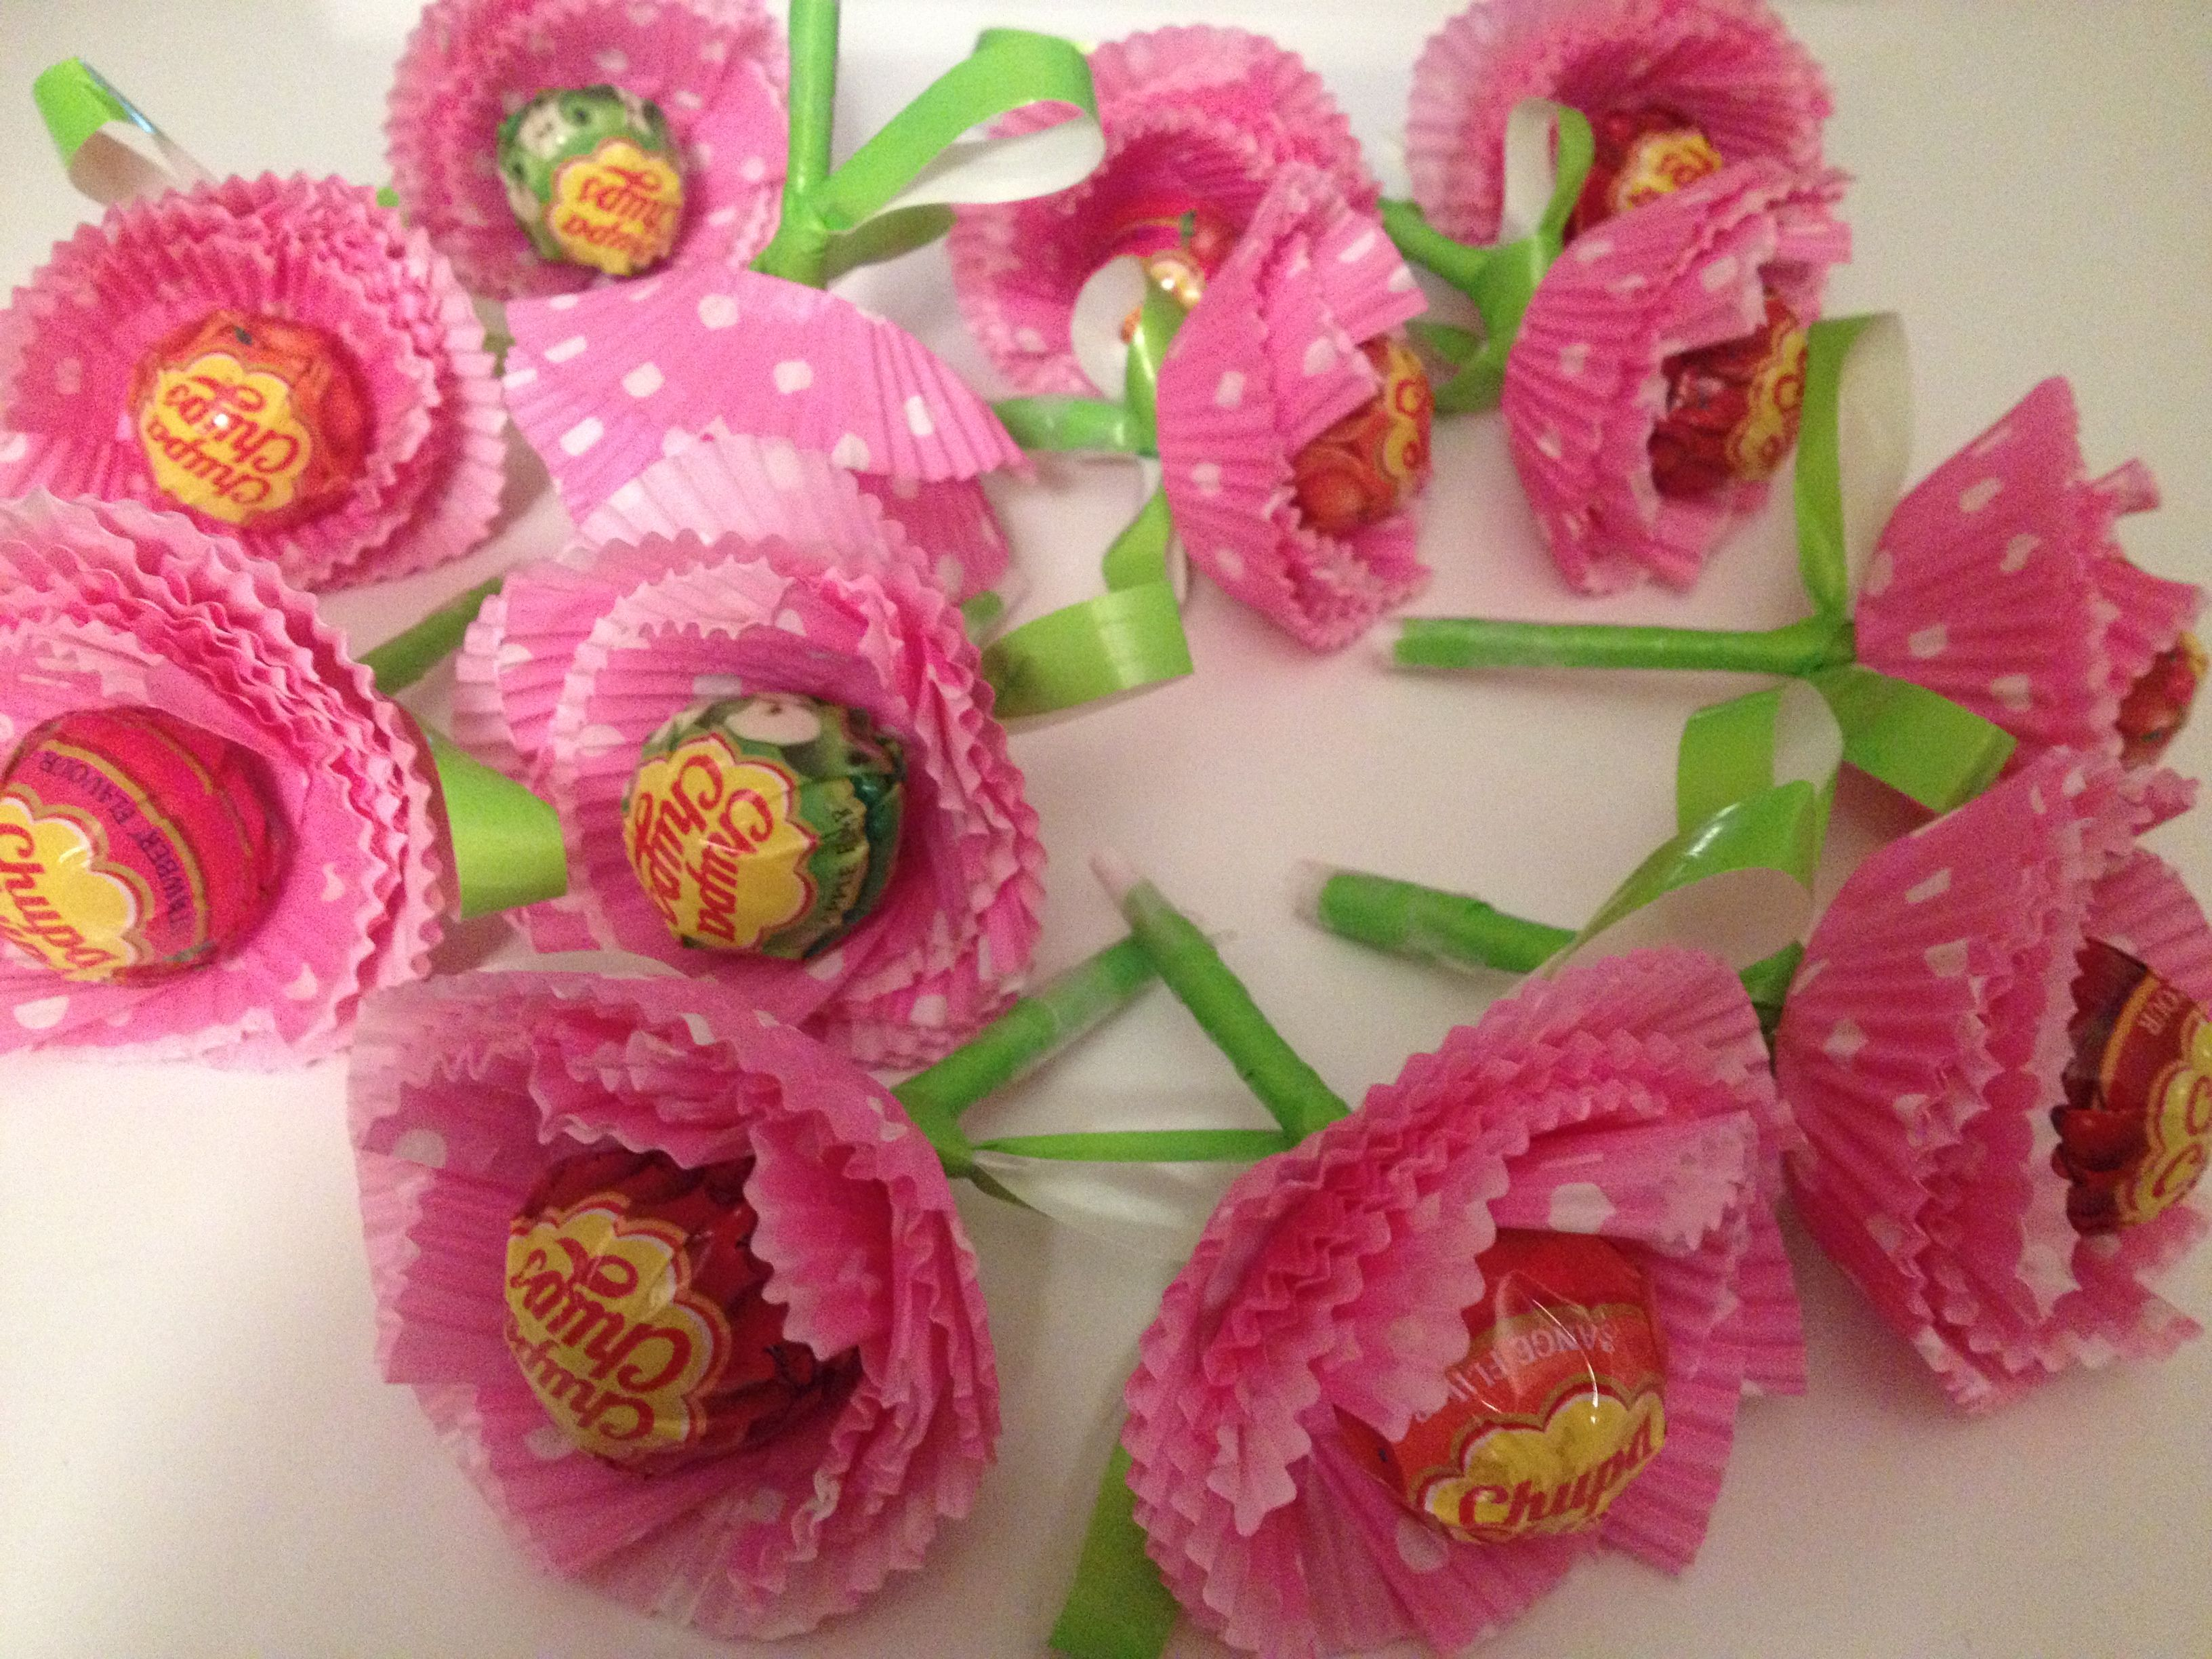 Chupa Chup Candy Flowers Diy With The Following Materials Cupcake